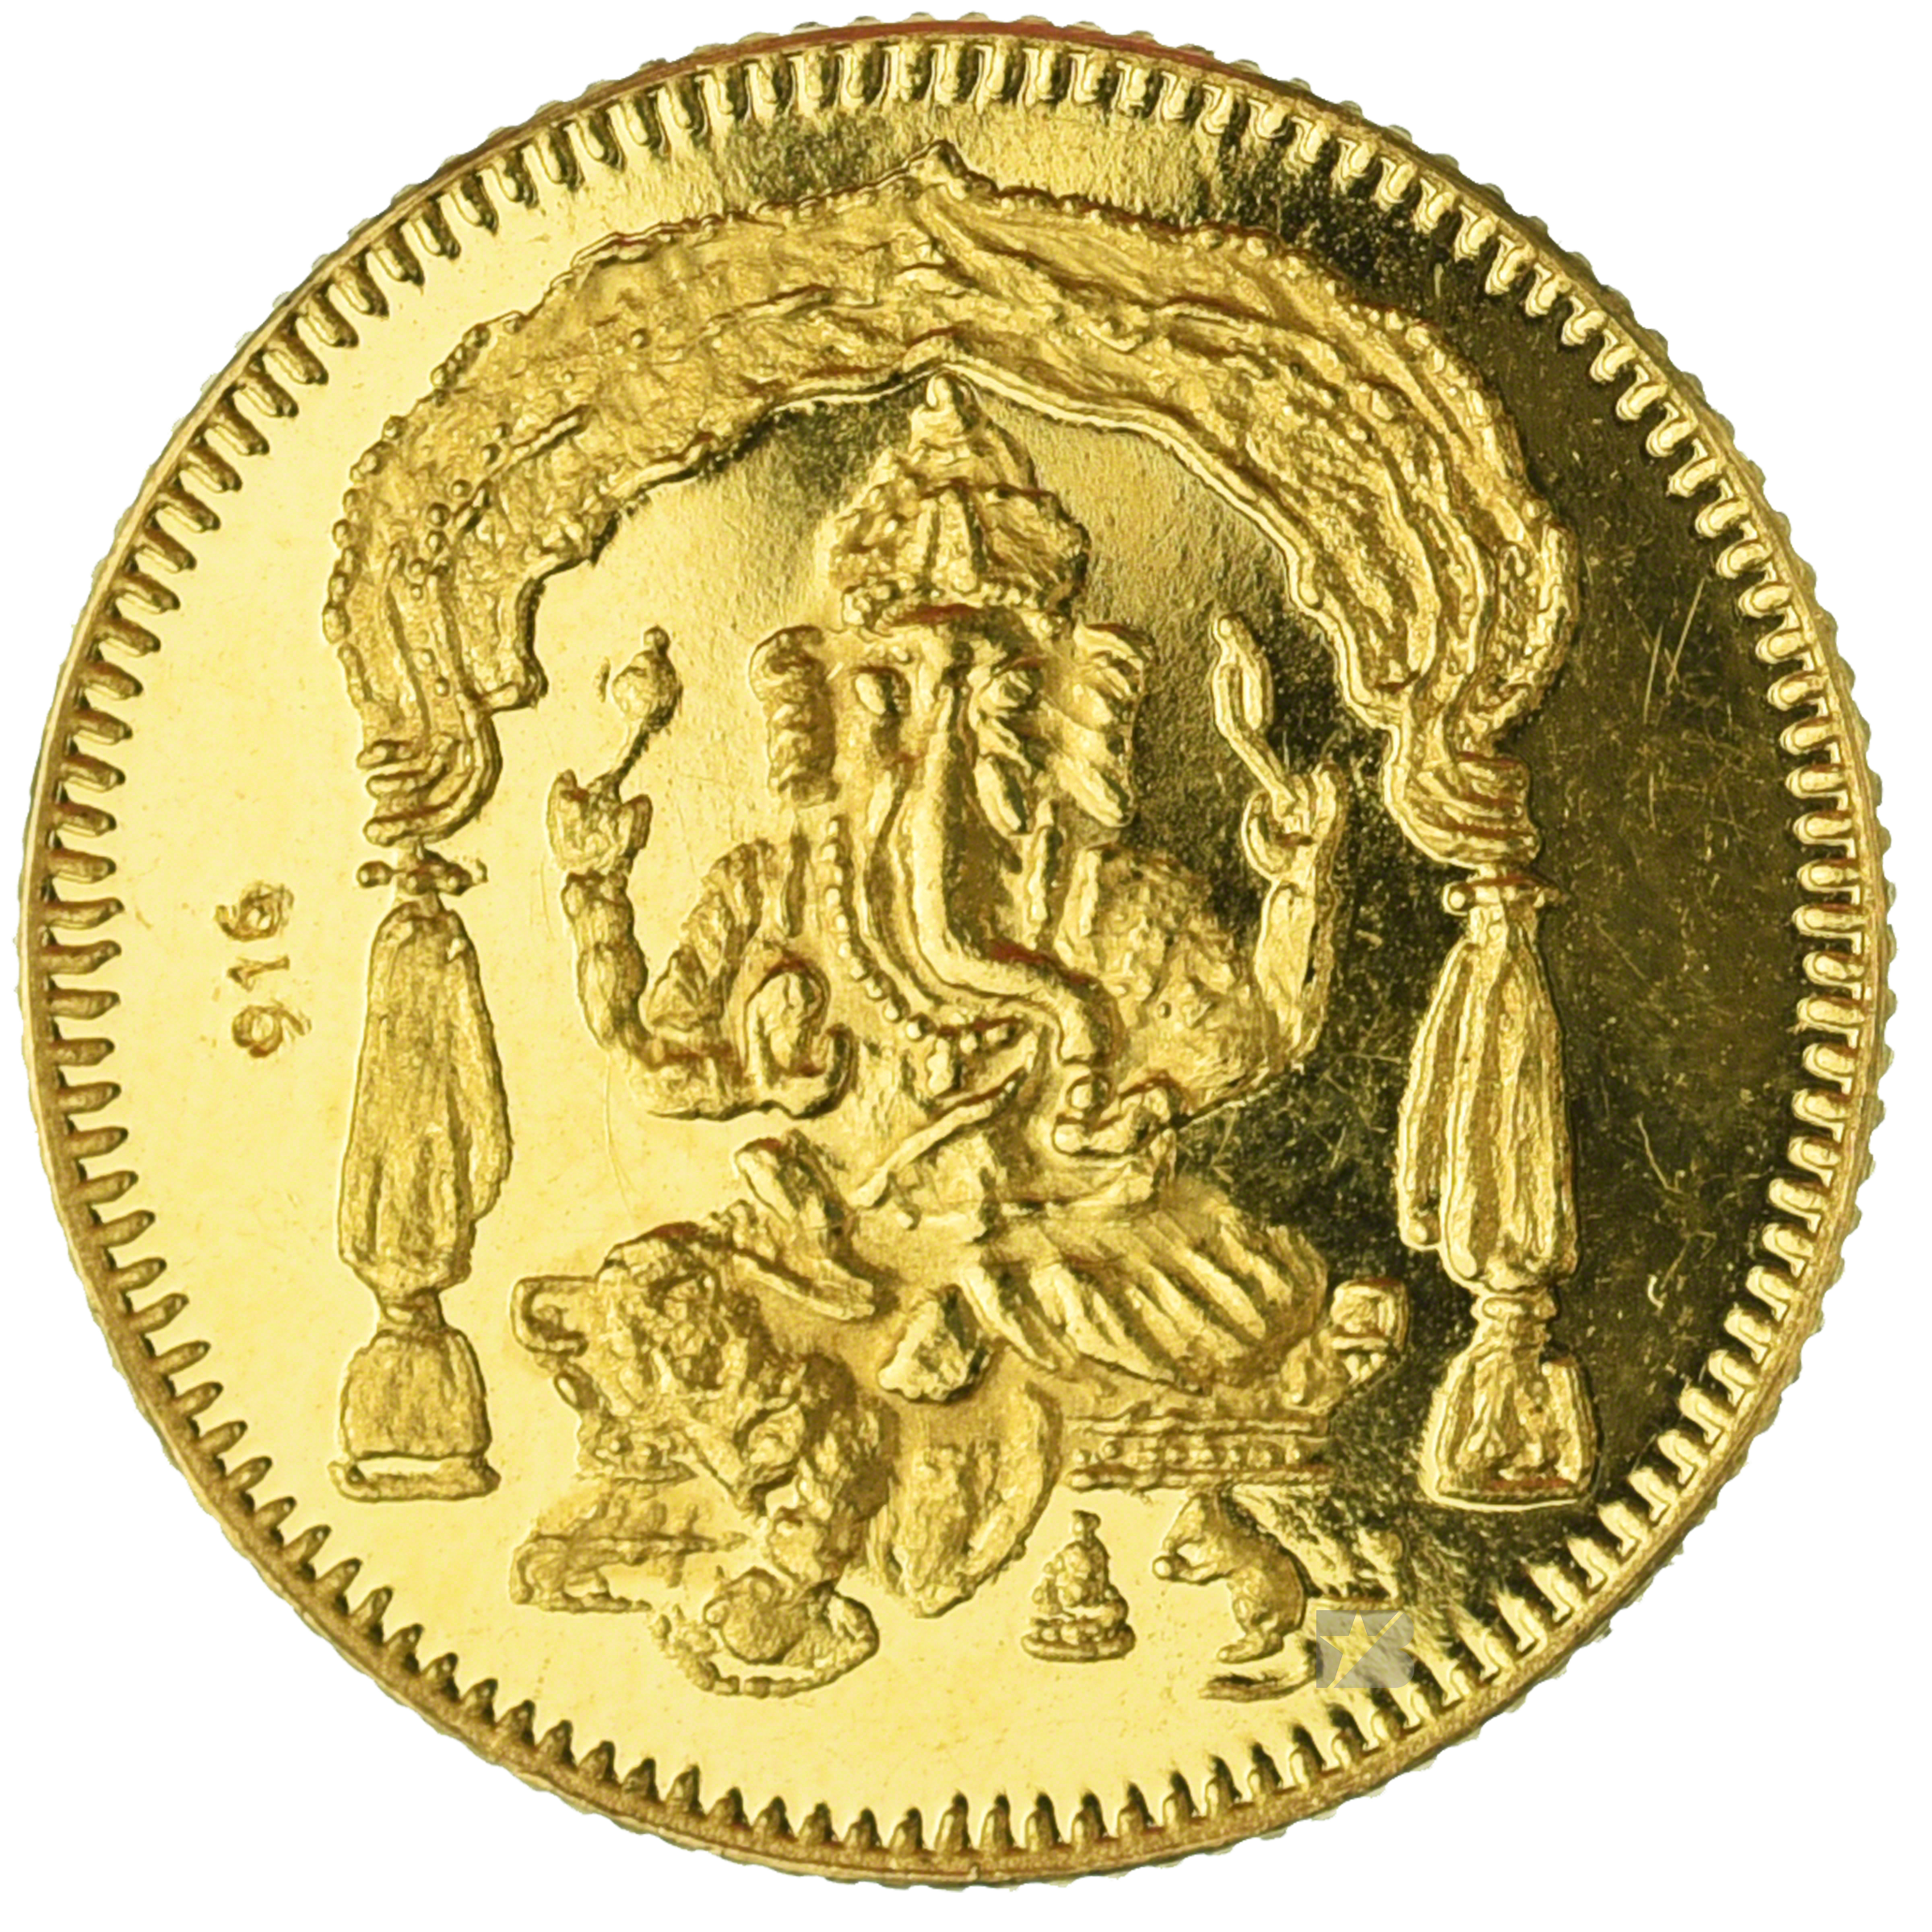 medallion coin il pirate money fullxfull p gold pin lapel